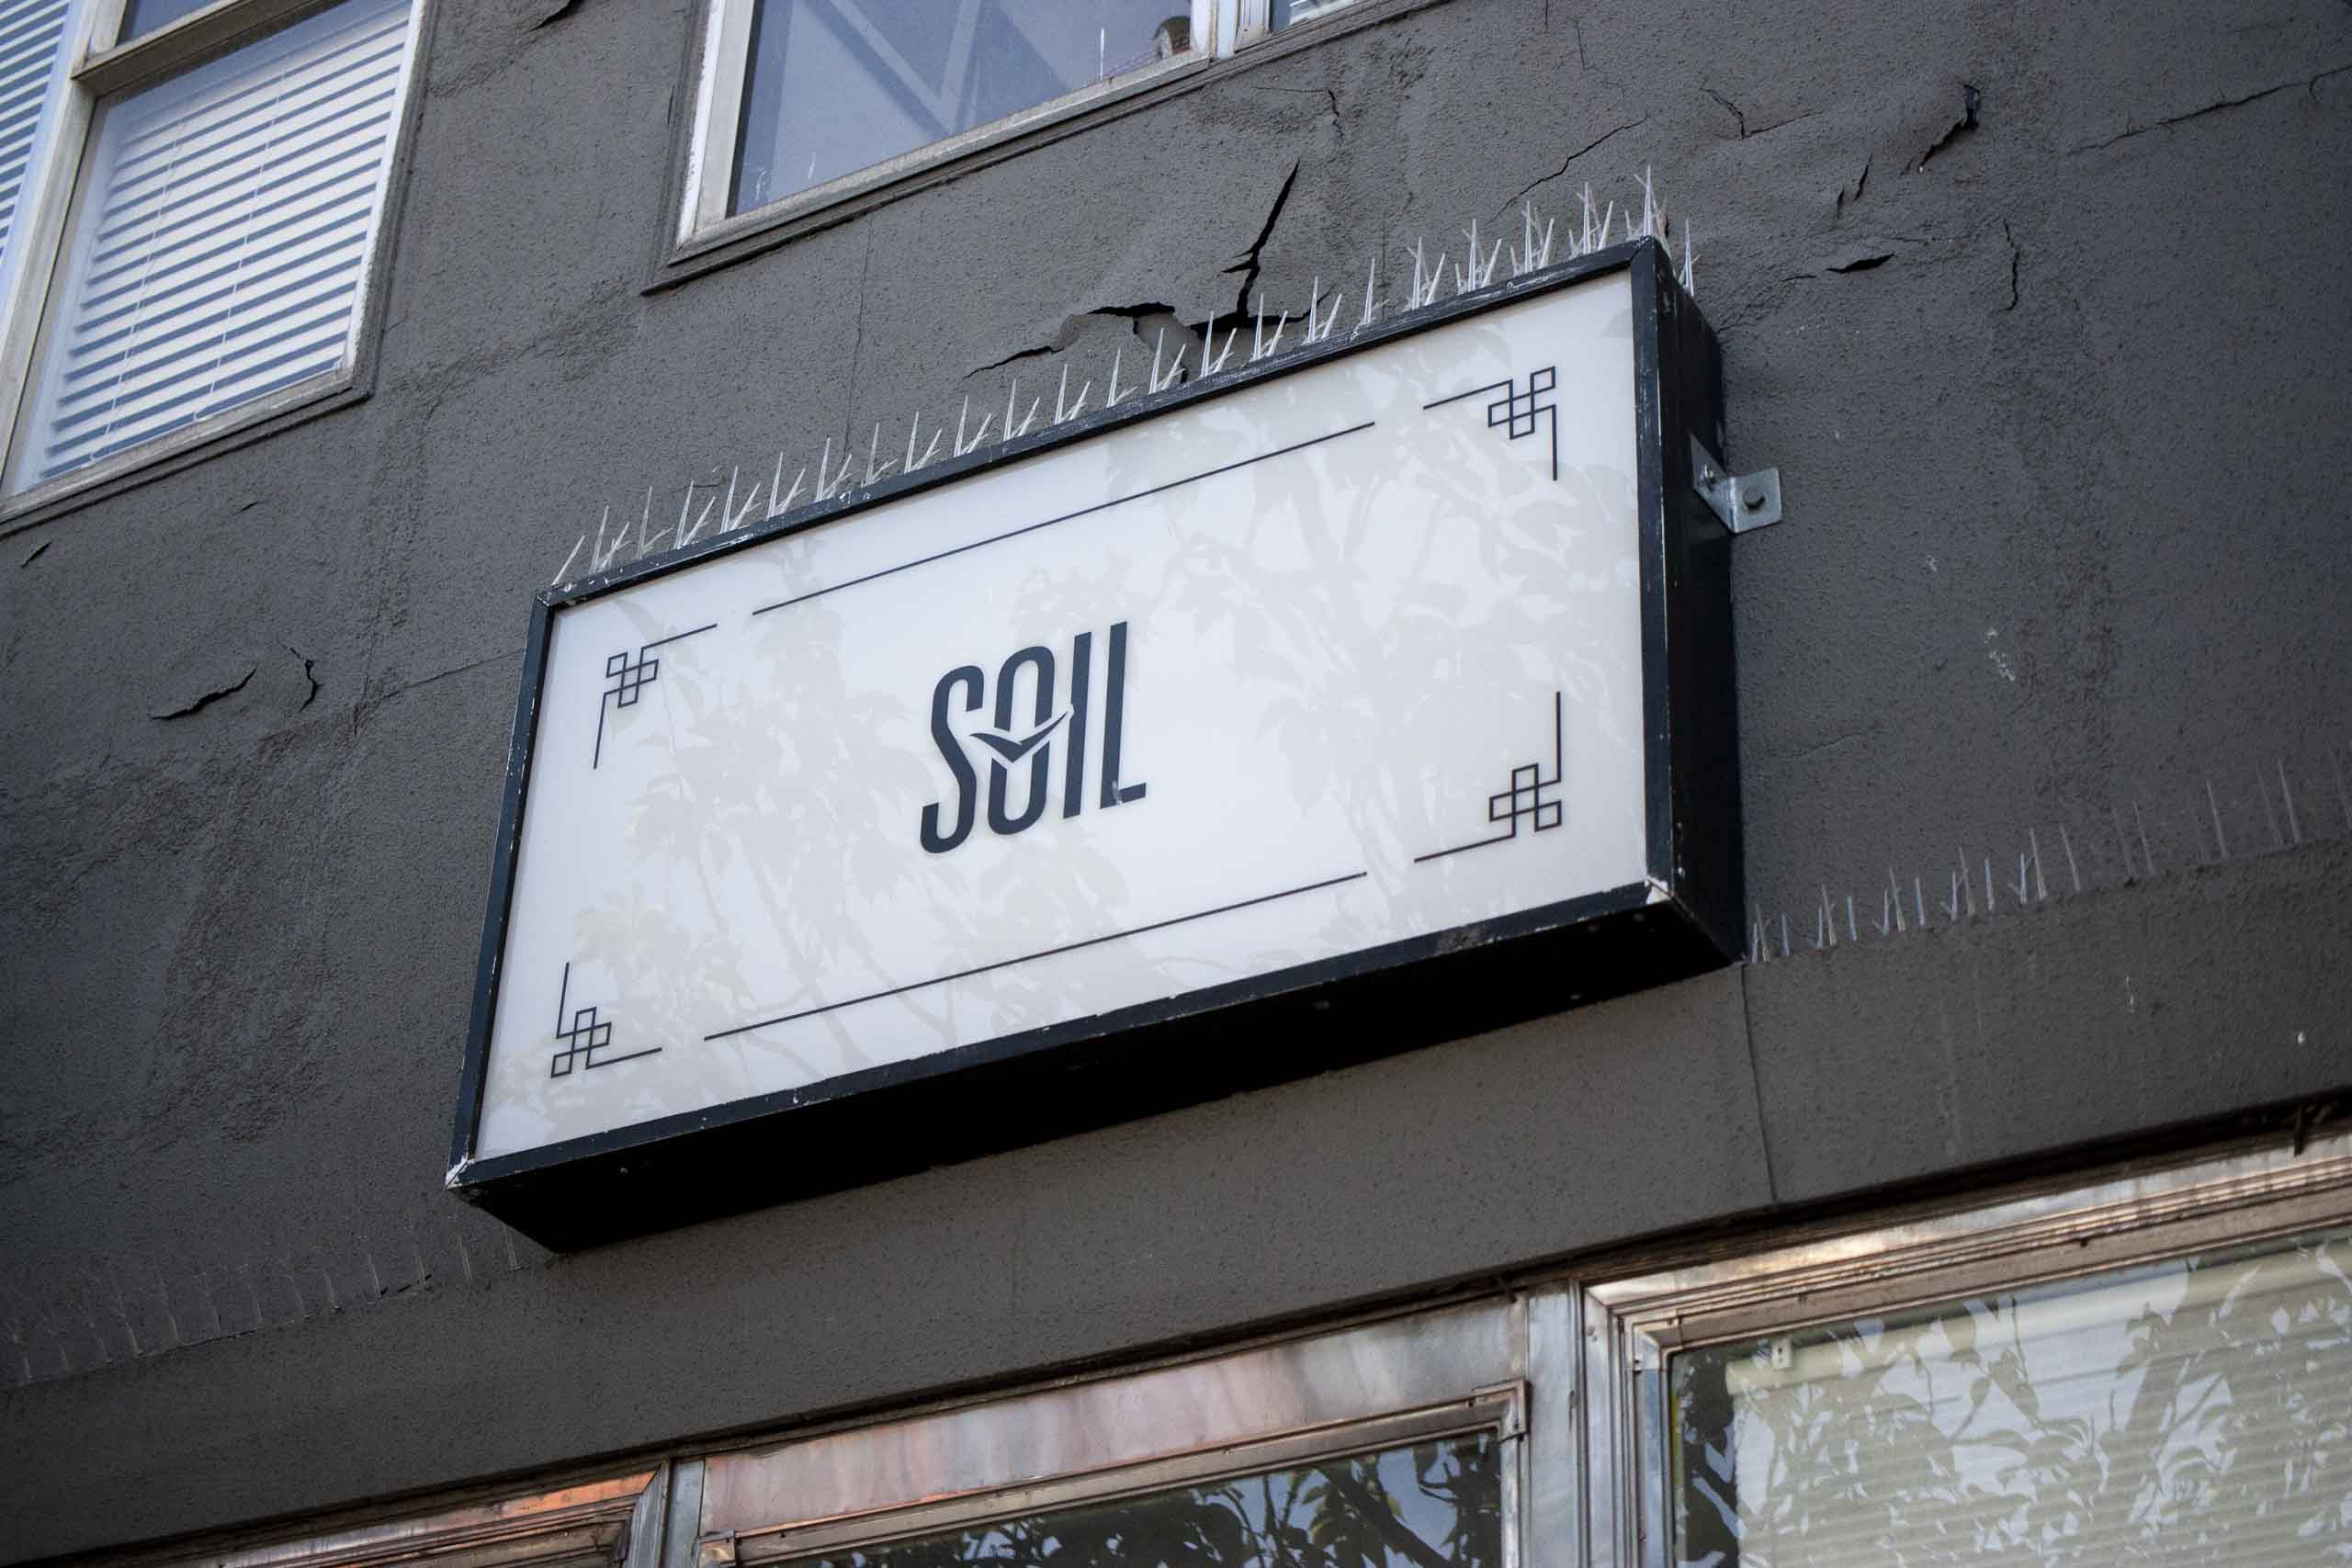 SOIL Restaurant Lightbox featuring the logo and decorative detailing in the corner — by Dima.